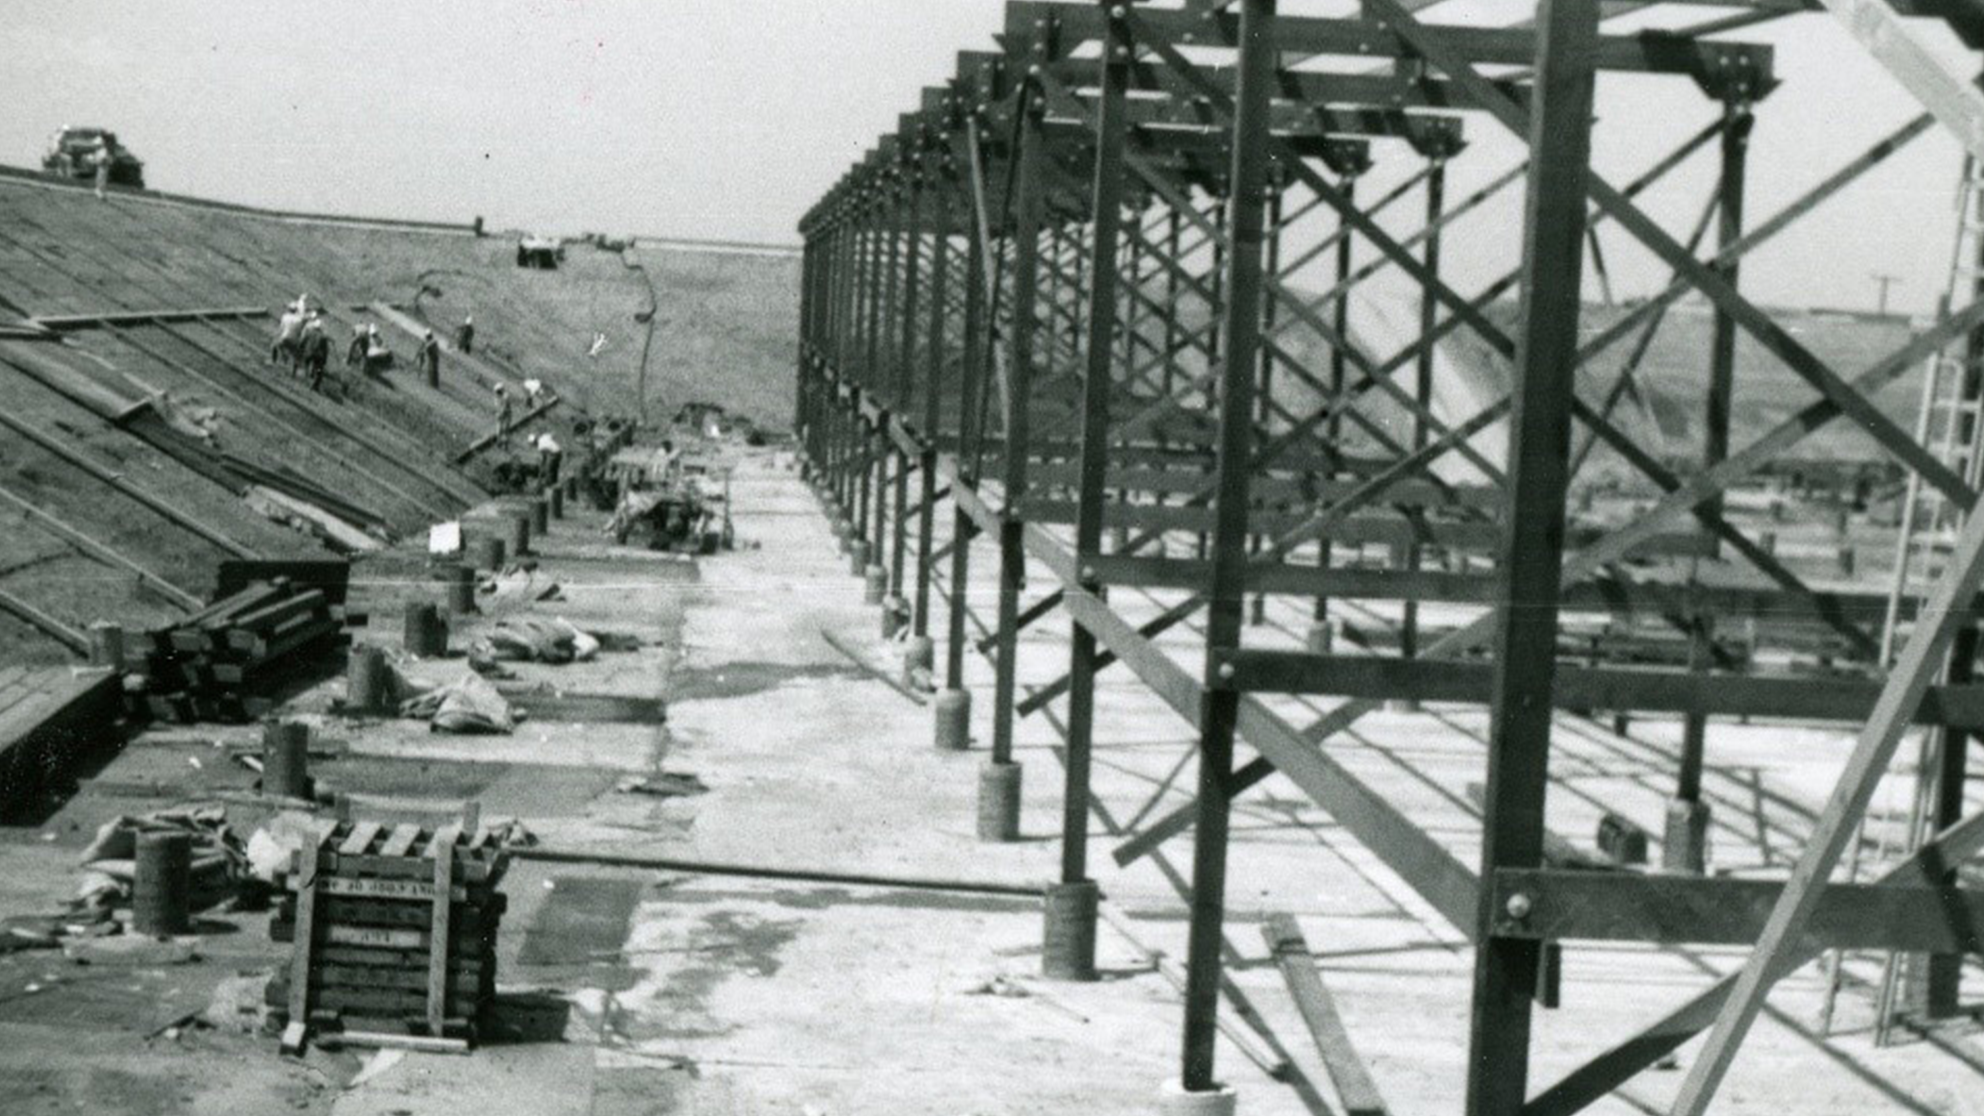 Original construction photo from 1963